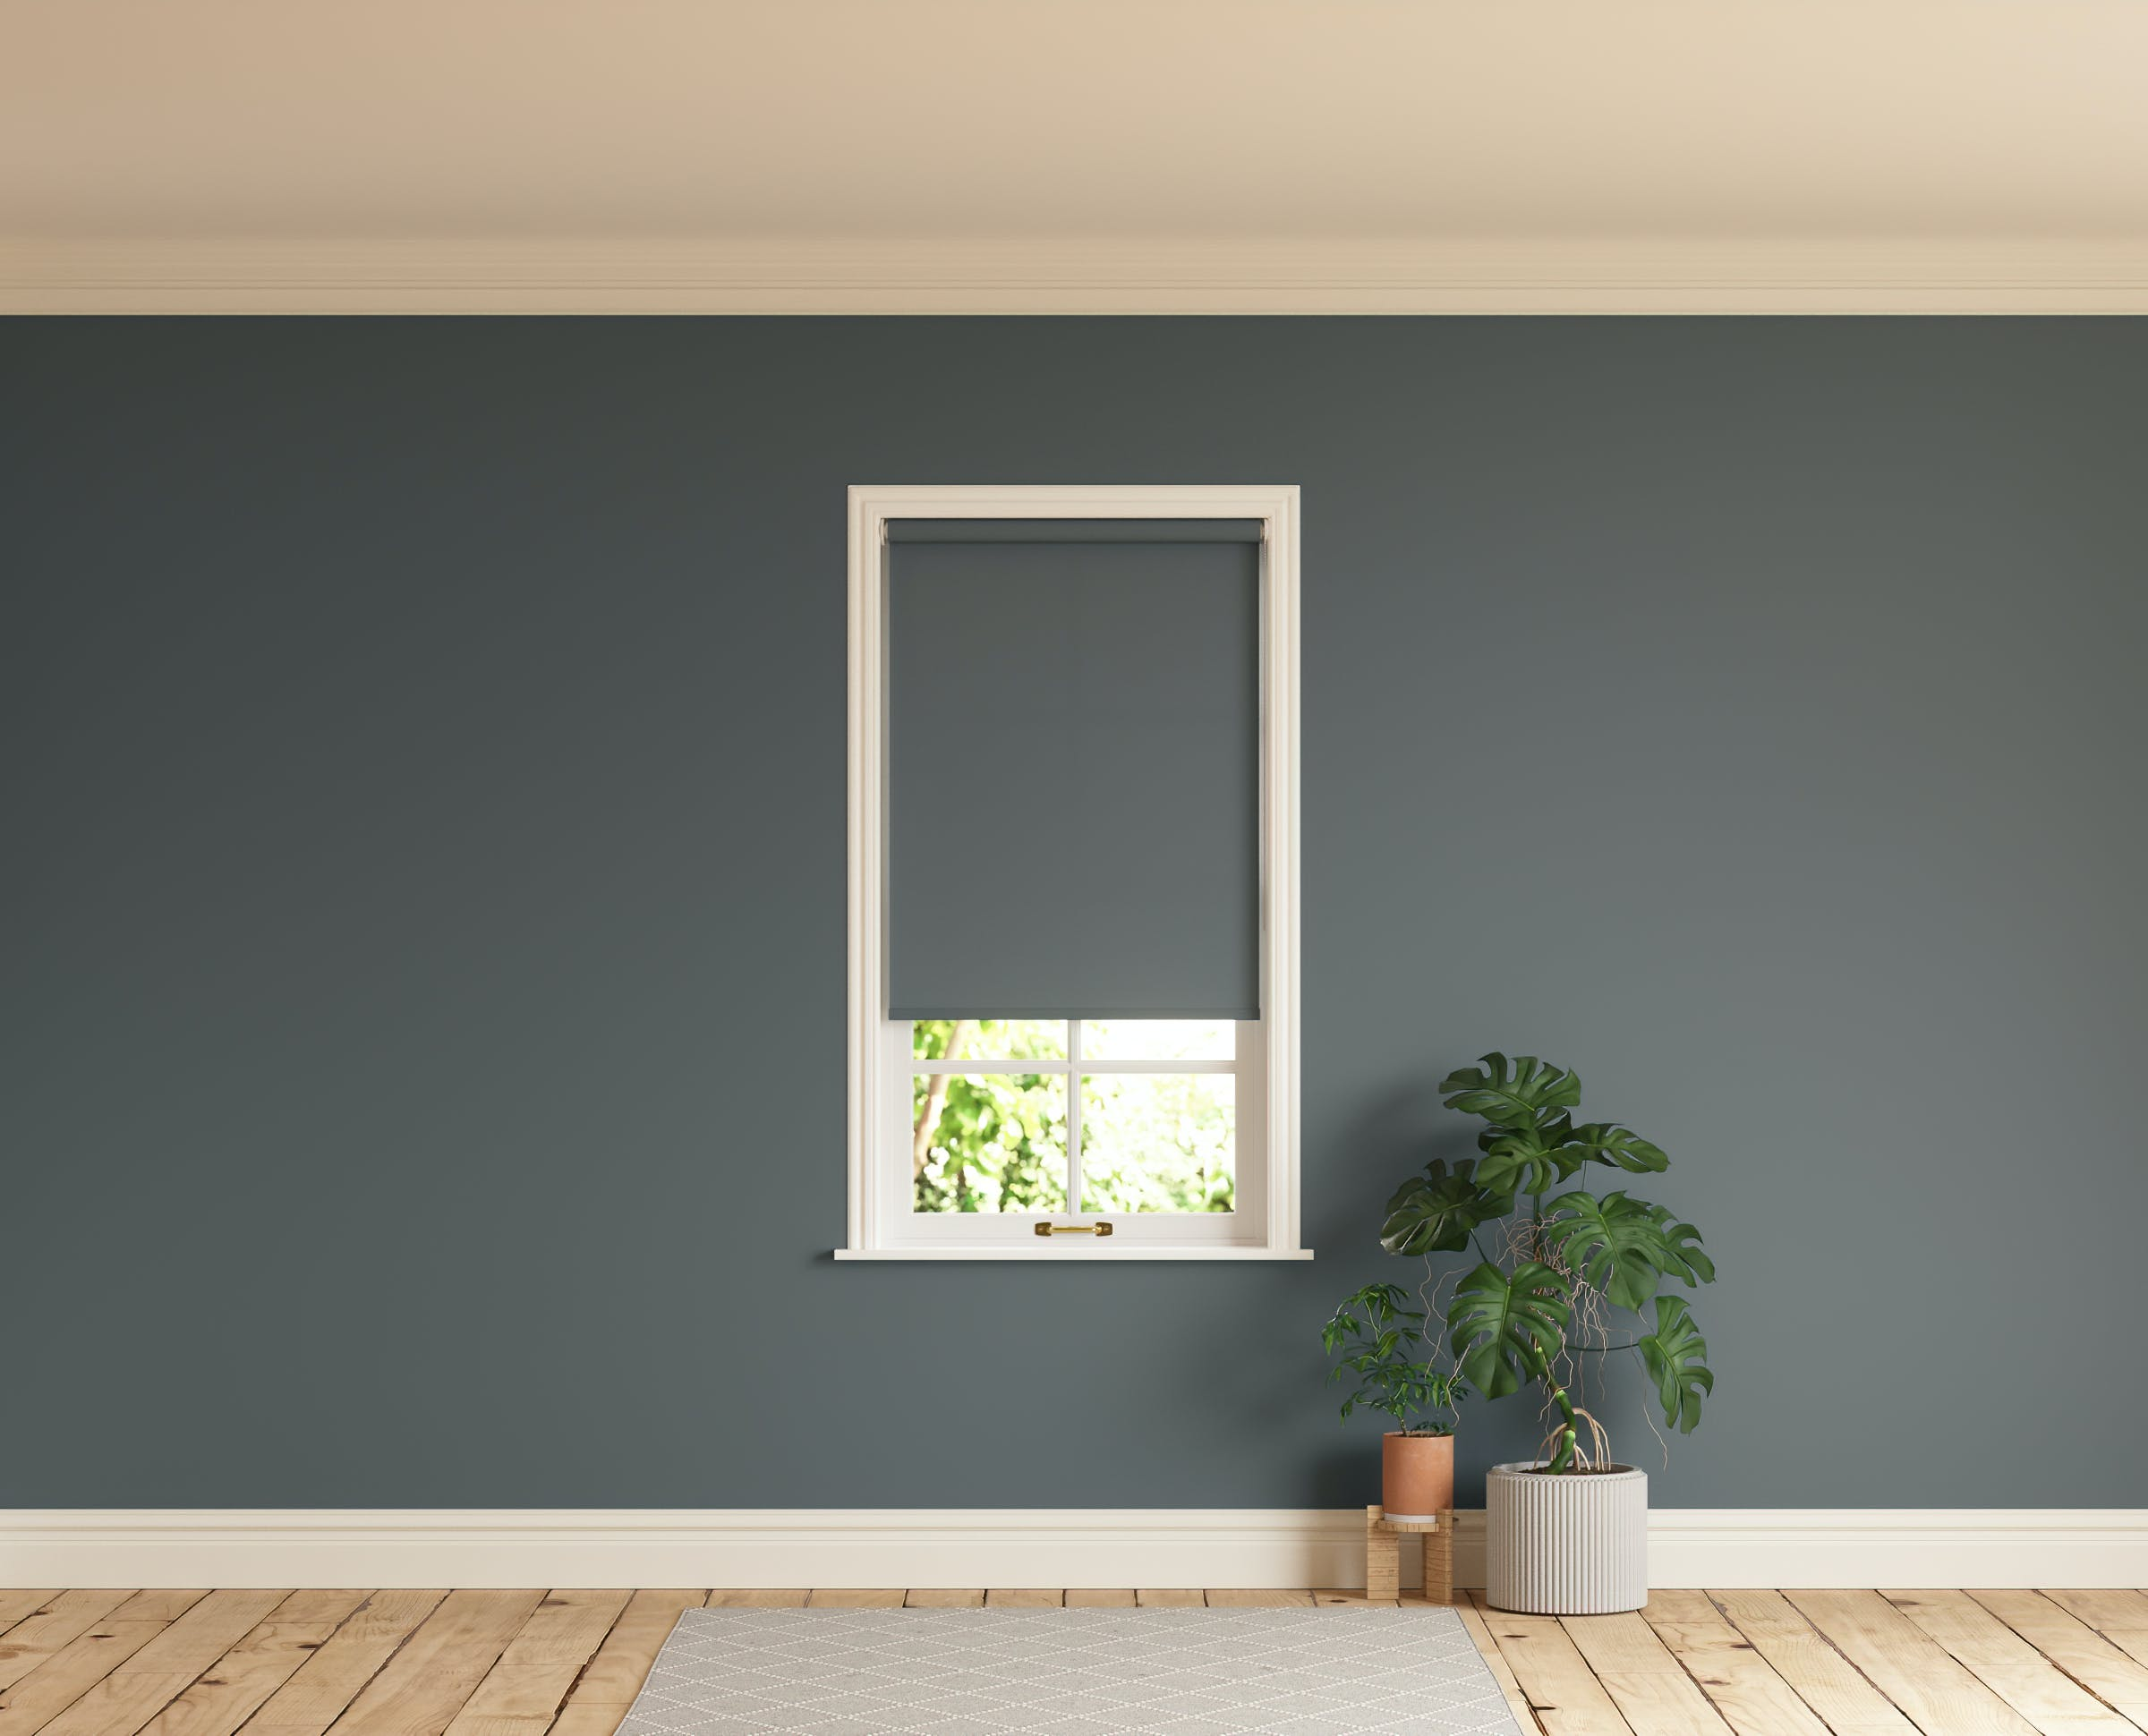 Room with walls painted in Lick Grey 07 and Grey 07 roller blinds